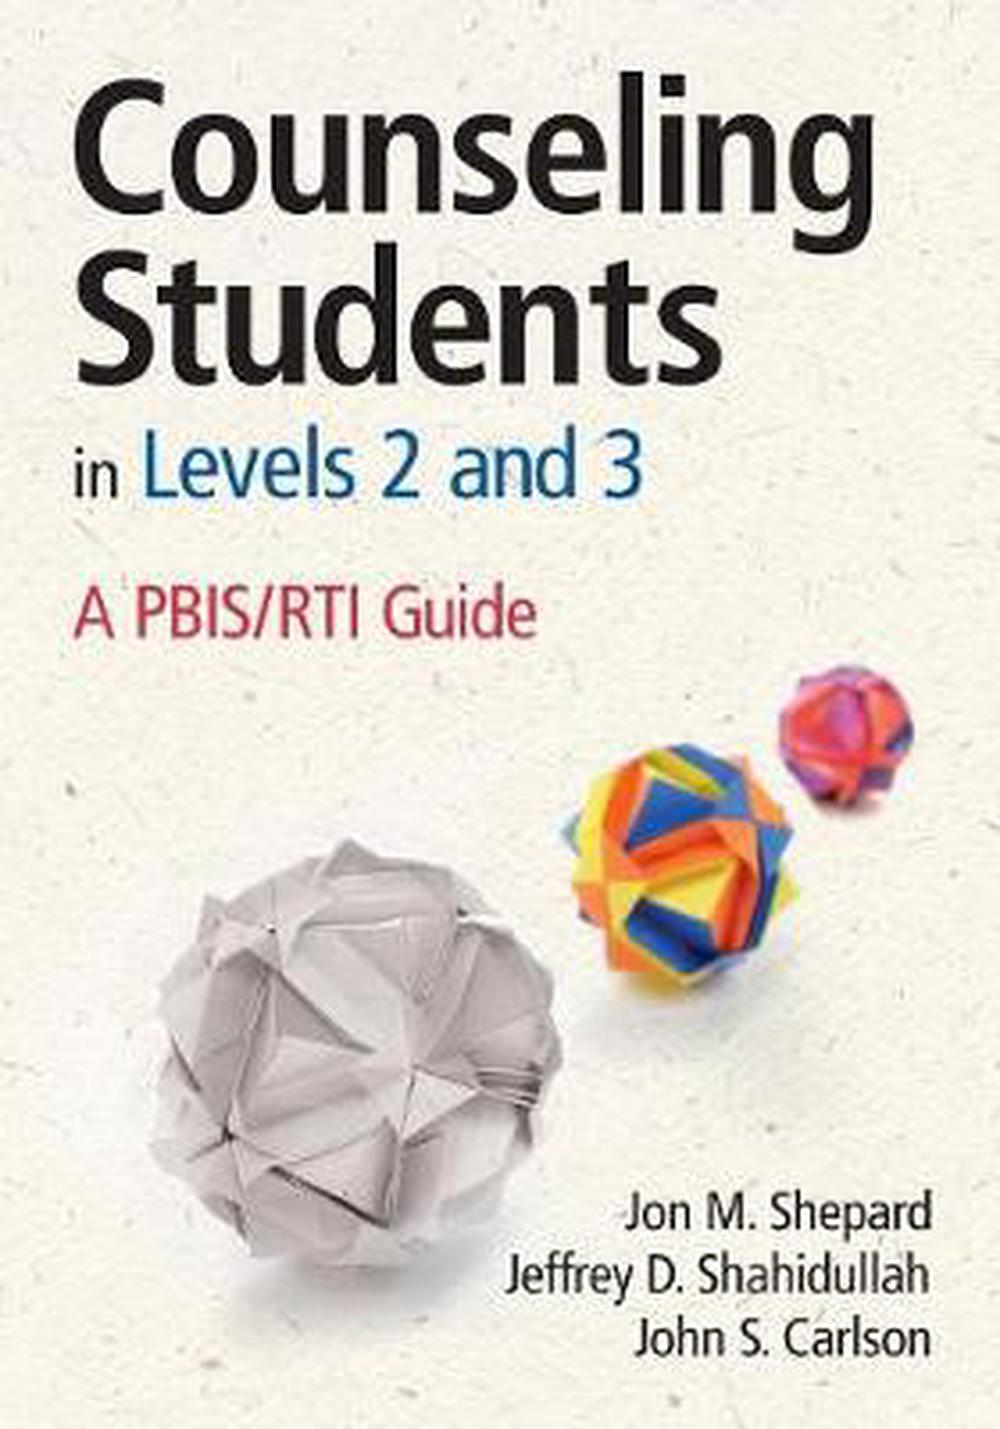 Counseling Students in Levels 2 and 3 by Jon M. Shepard, ISBN: 9781452255644